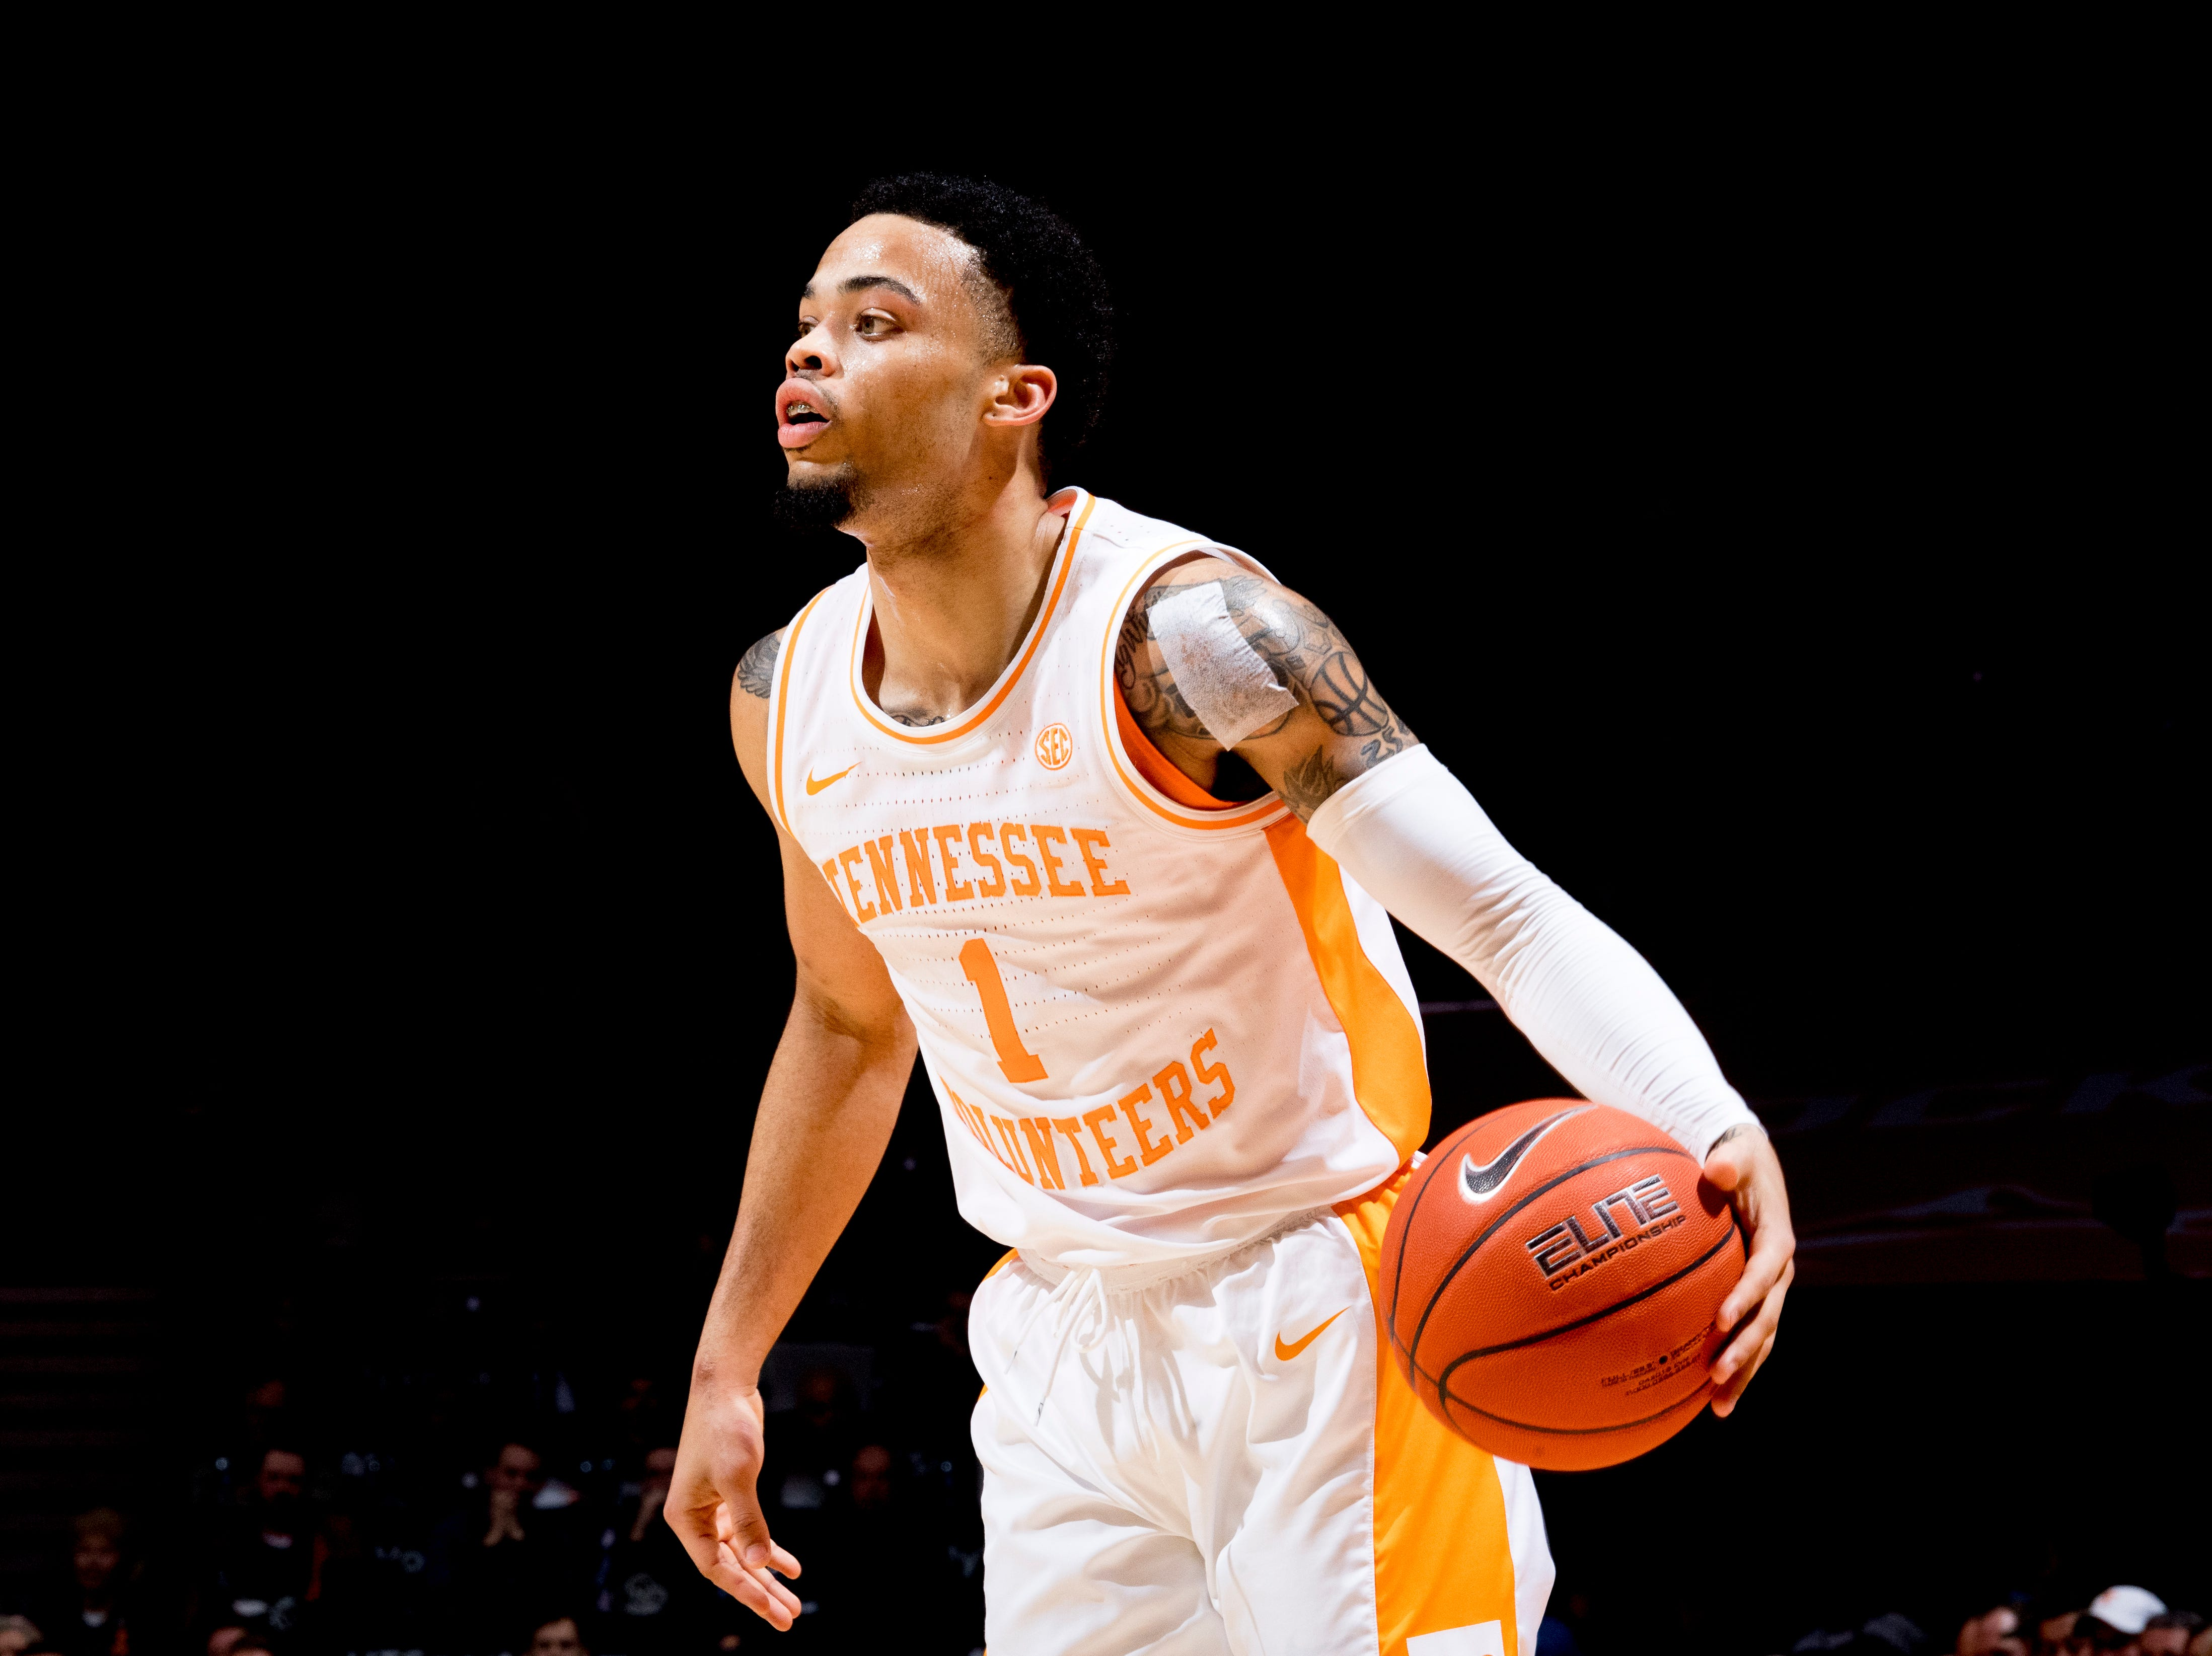 Tennessee guard Lamonte Turner (1) dribbles down the court during a game between Tennessee and Vanderbilt at Thompson-Boling Arena in Knoxville, Tennessee on Tuesday, February 19, 2019.